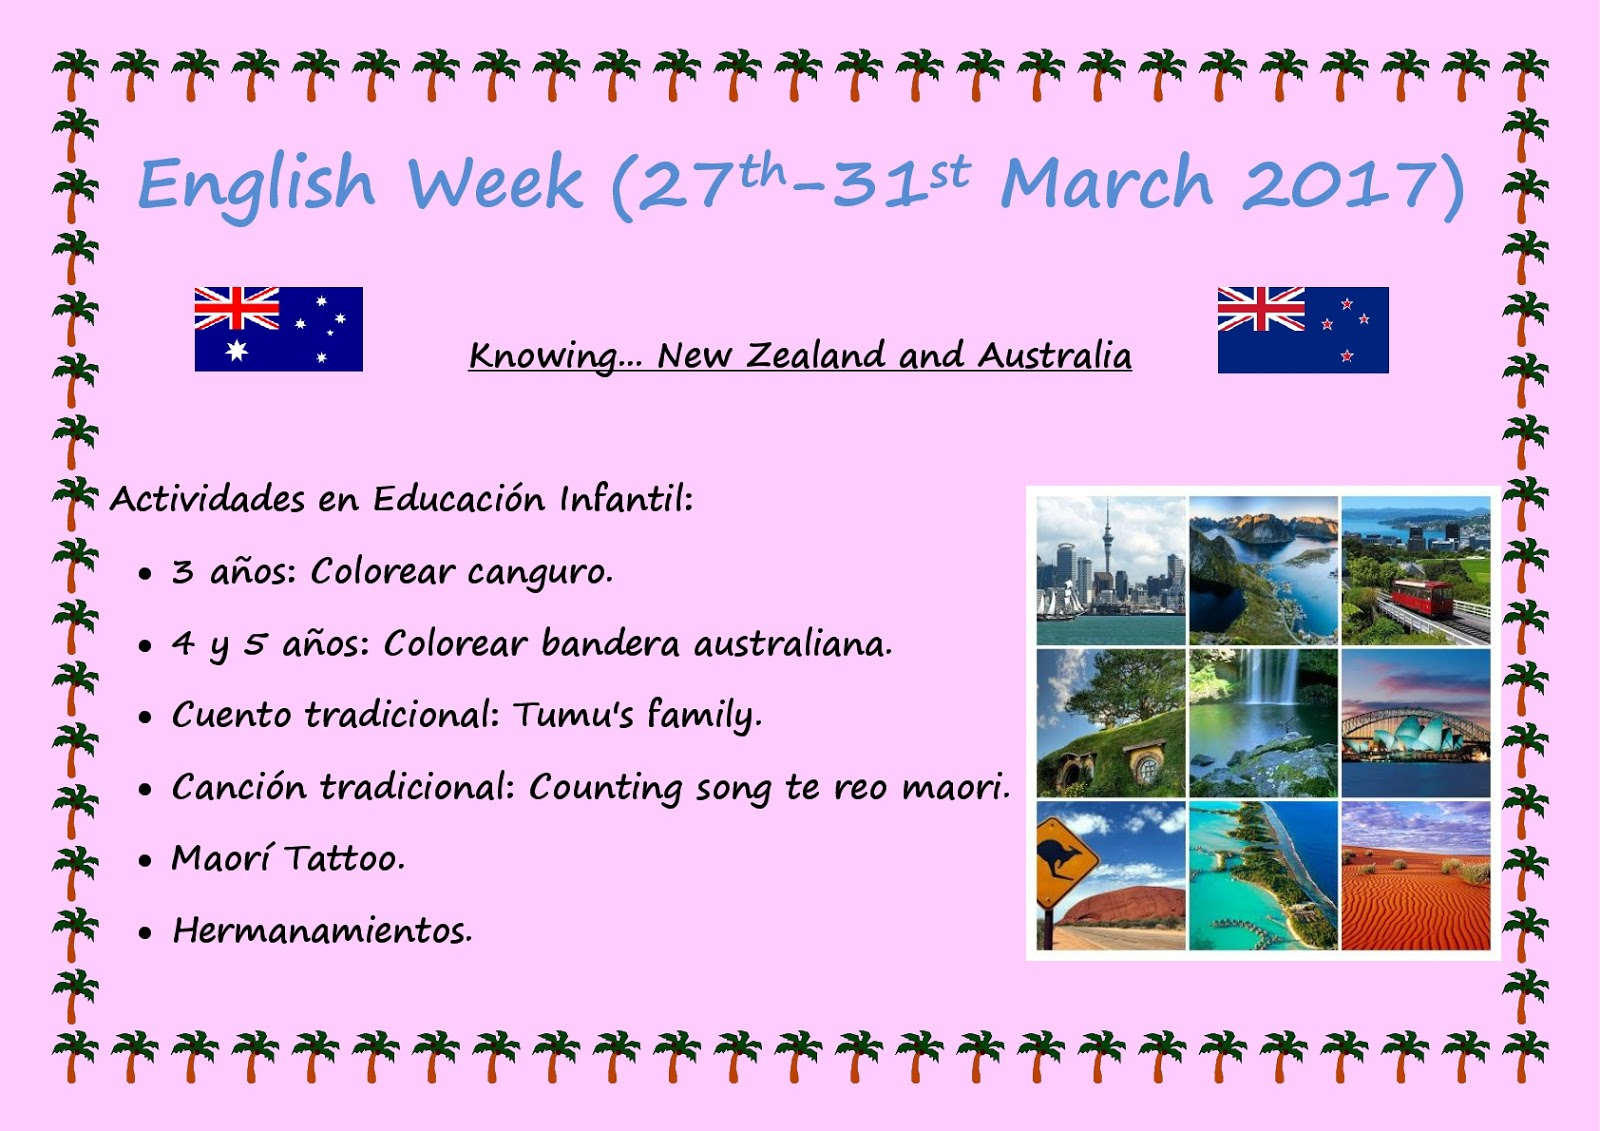 Life in English: English Week